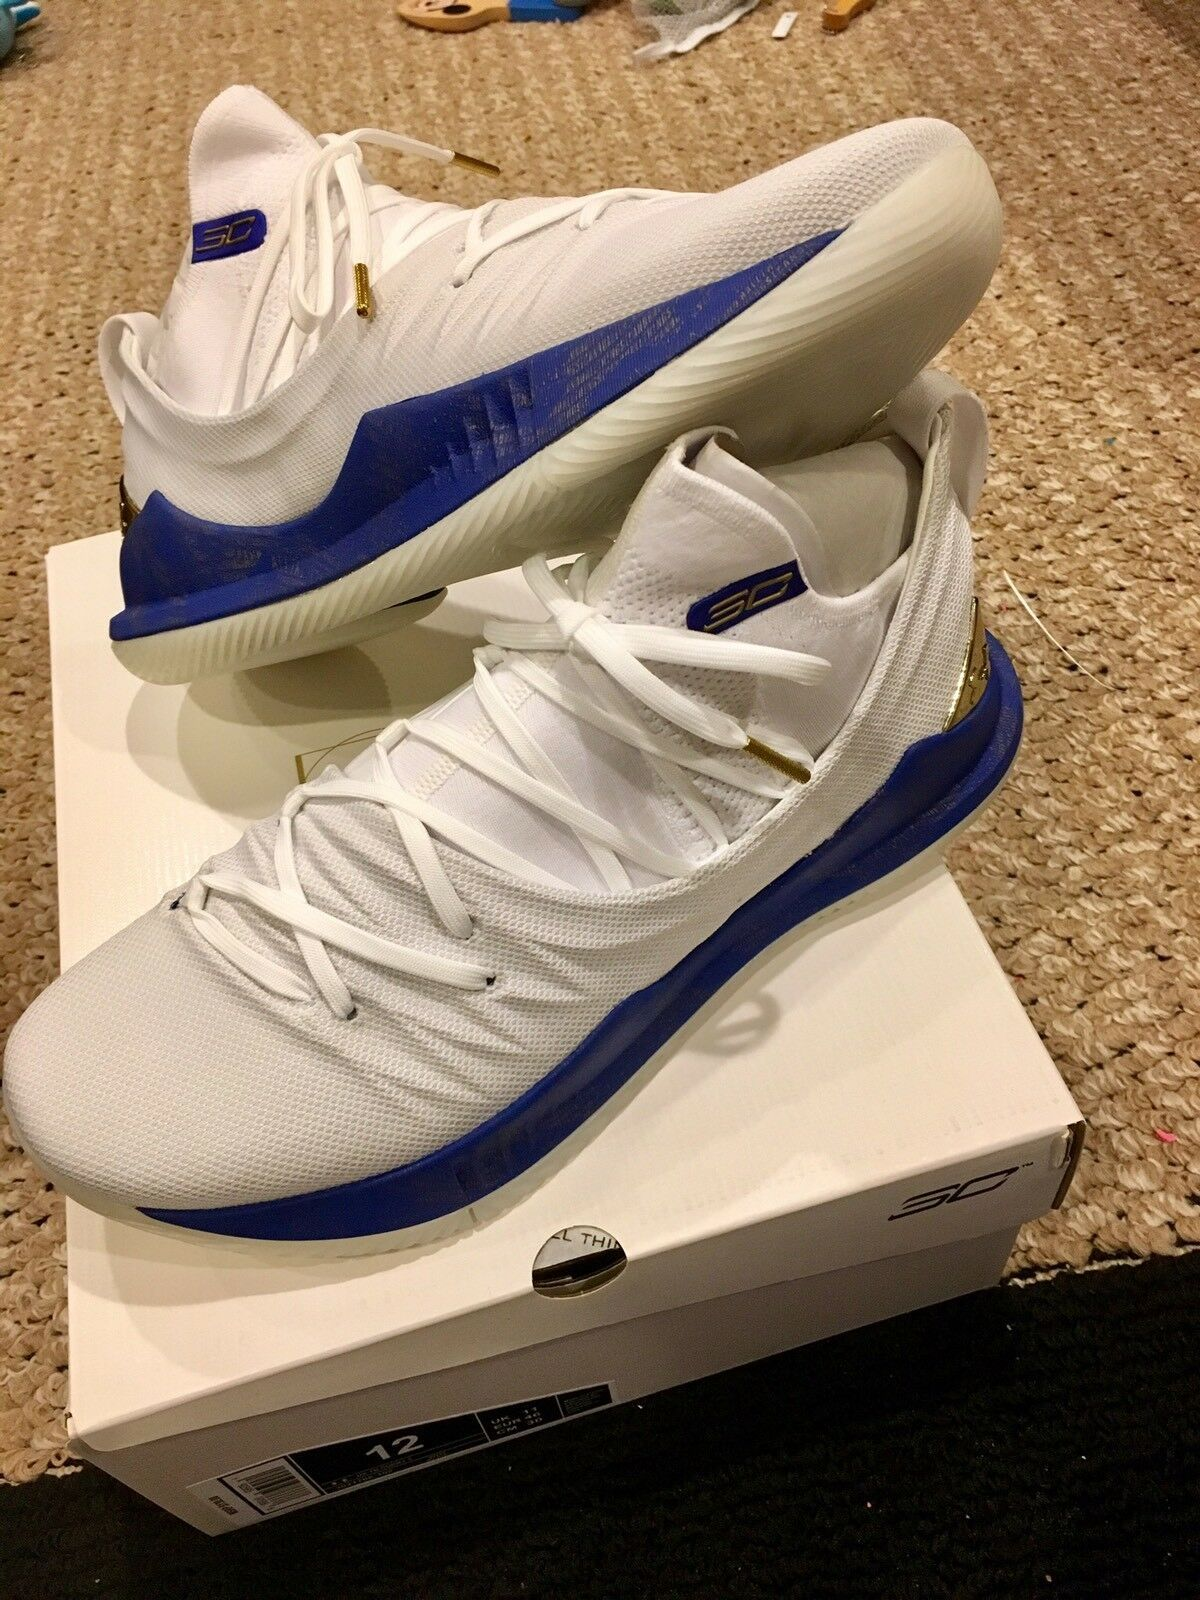 Under Armour Stephen Curry 5 Limited Edition White Le Pe Sz 12 Curry 4 Shoes Latest Curry 4 Shoes Stephen Curry Shoes Curry Basketball Shoes Curry Shoes